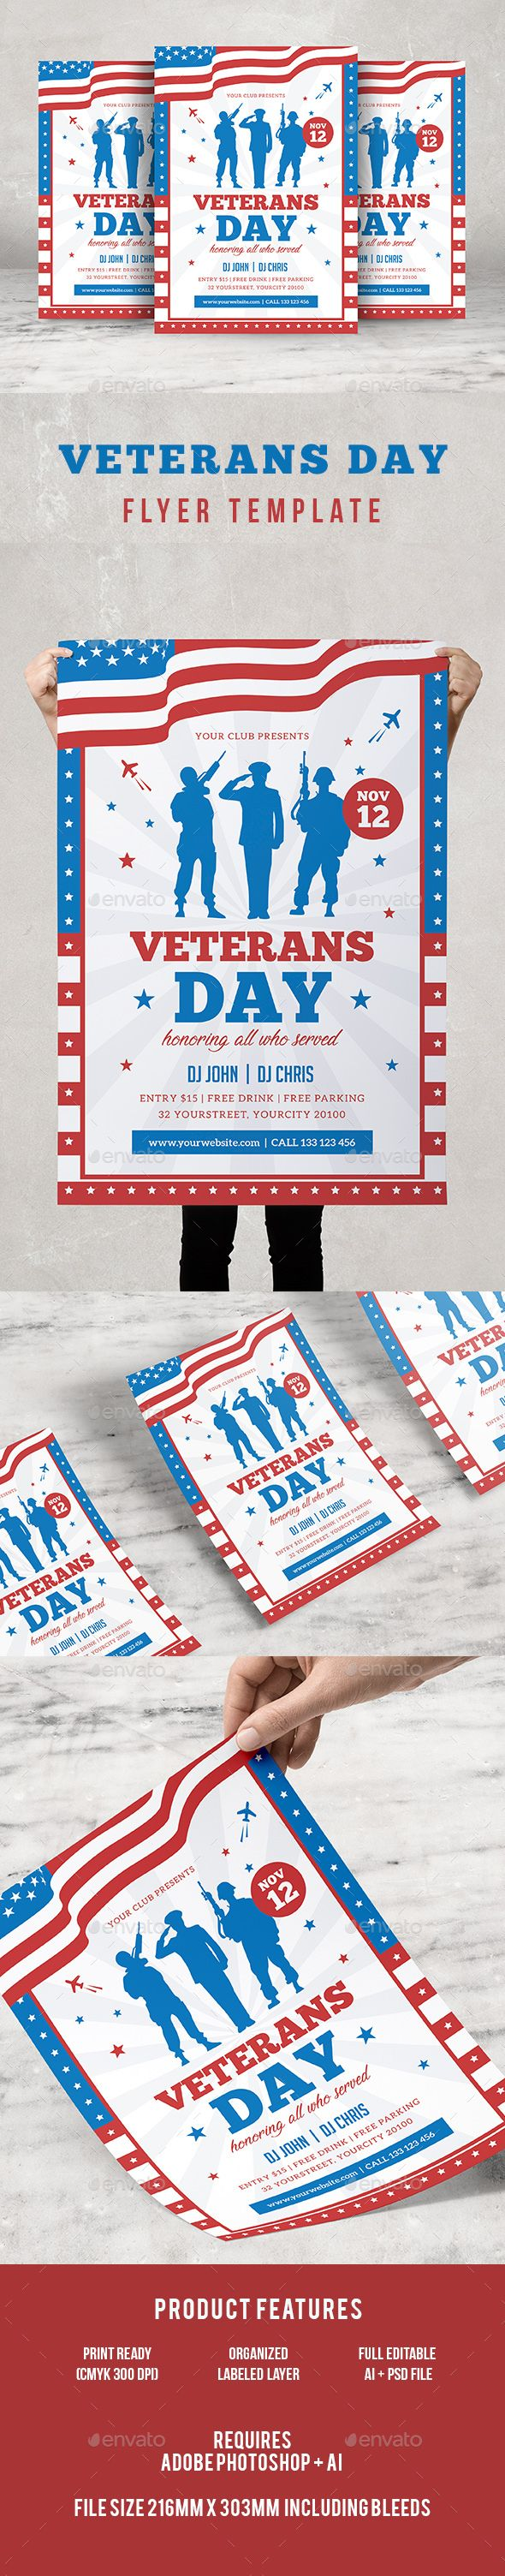 veterans day flyer flyer template template and text fonts